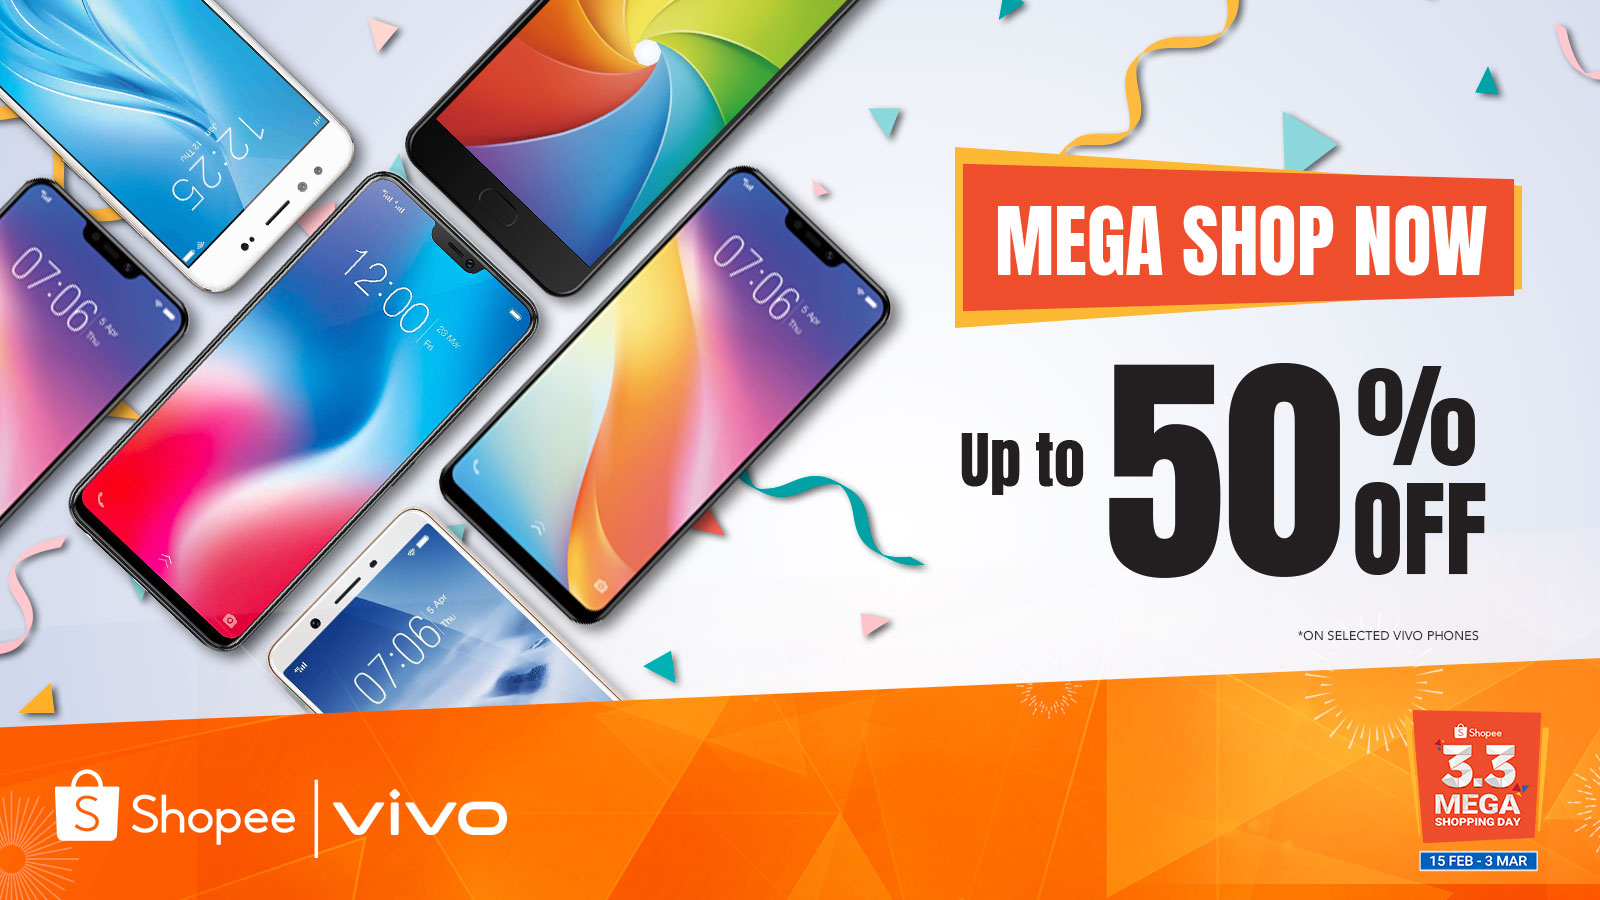 vivo shopee, Vivo offers up to 50% off for select smartphones today on Shopee!, Gadget Pilipinas, Gadget Pilipinas